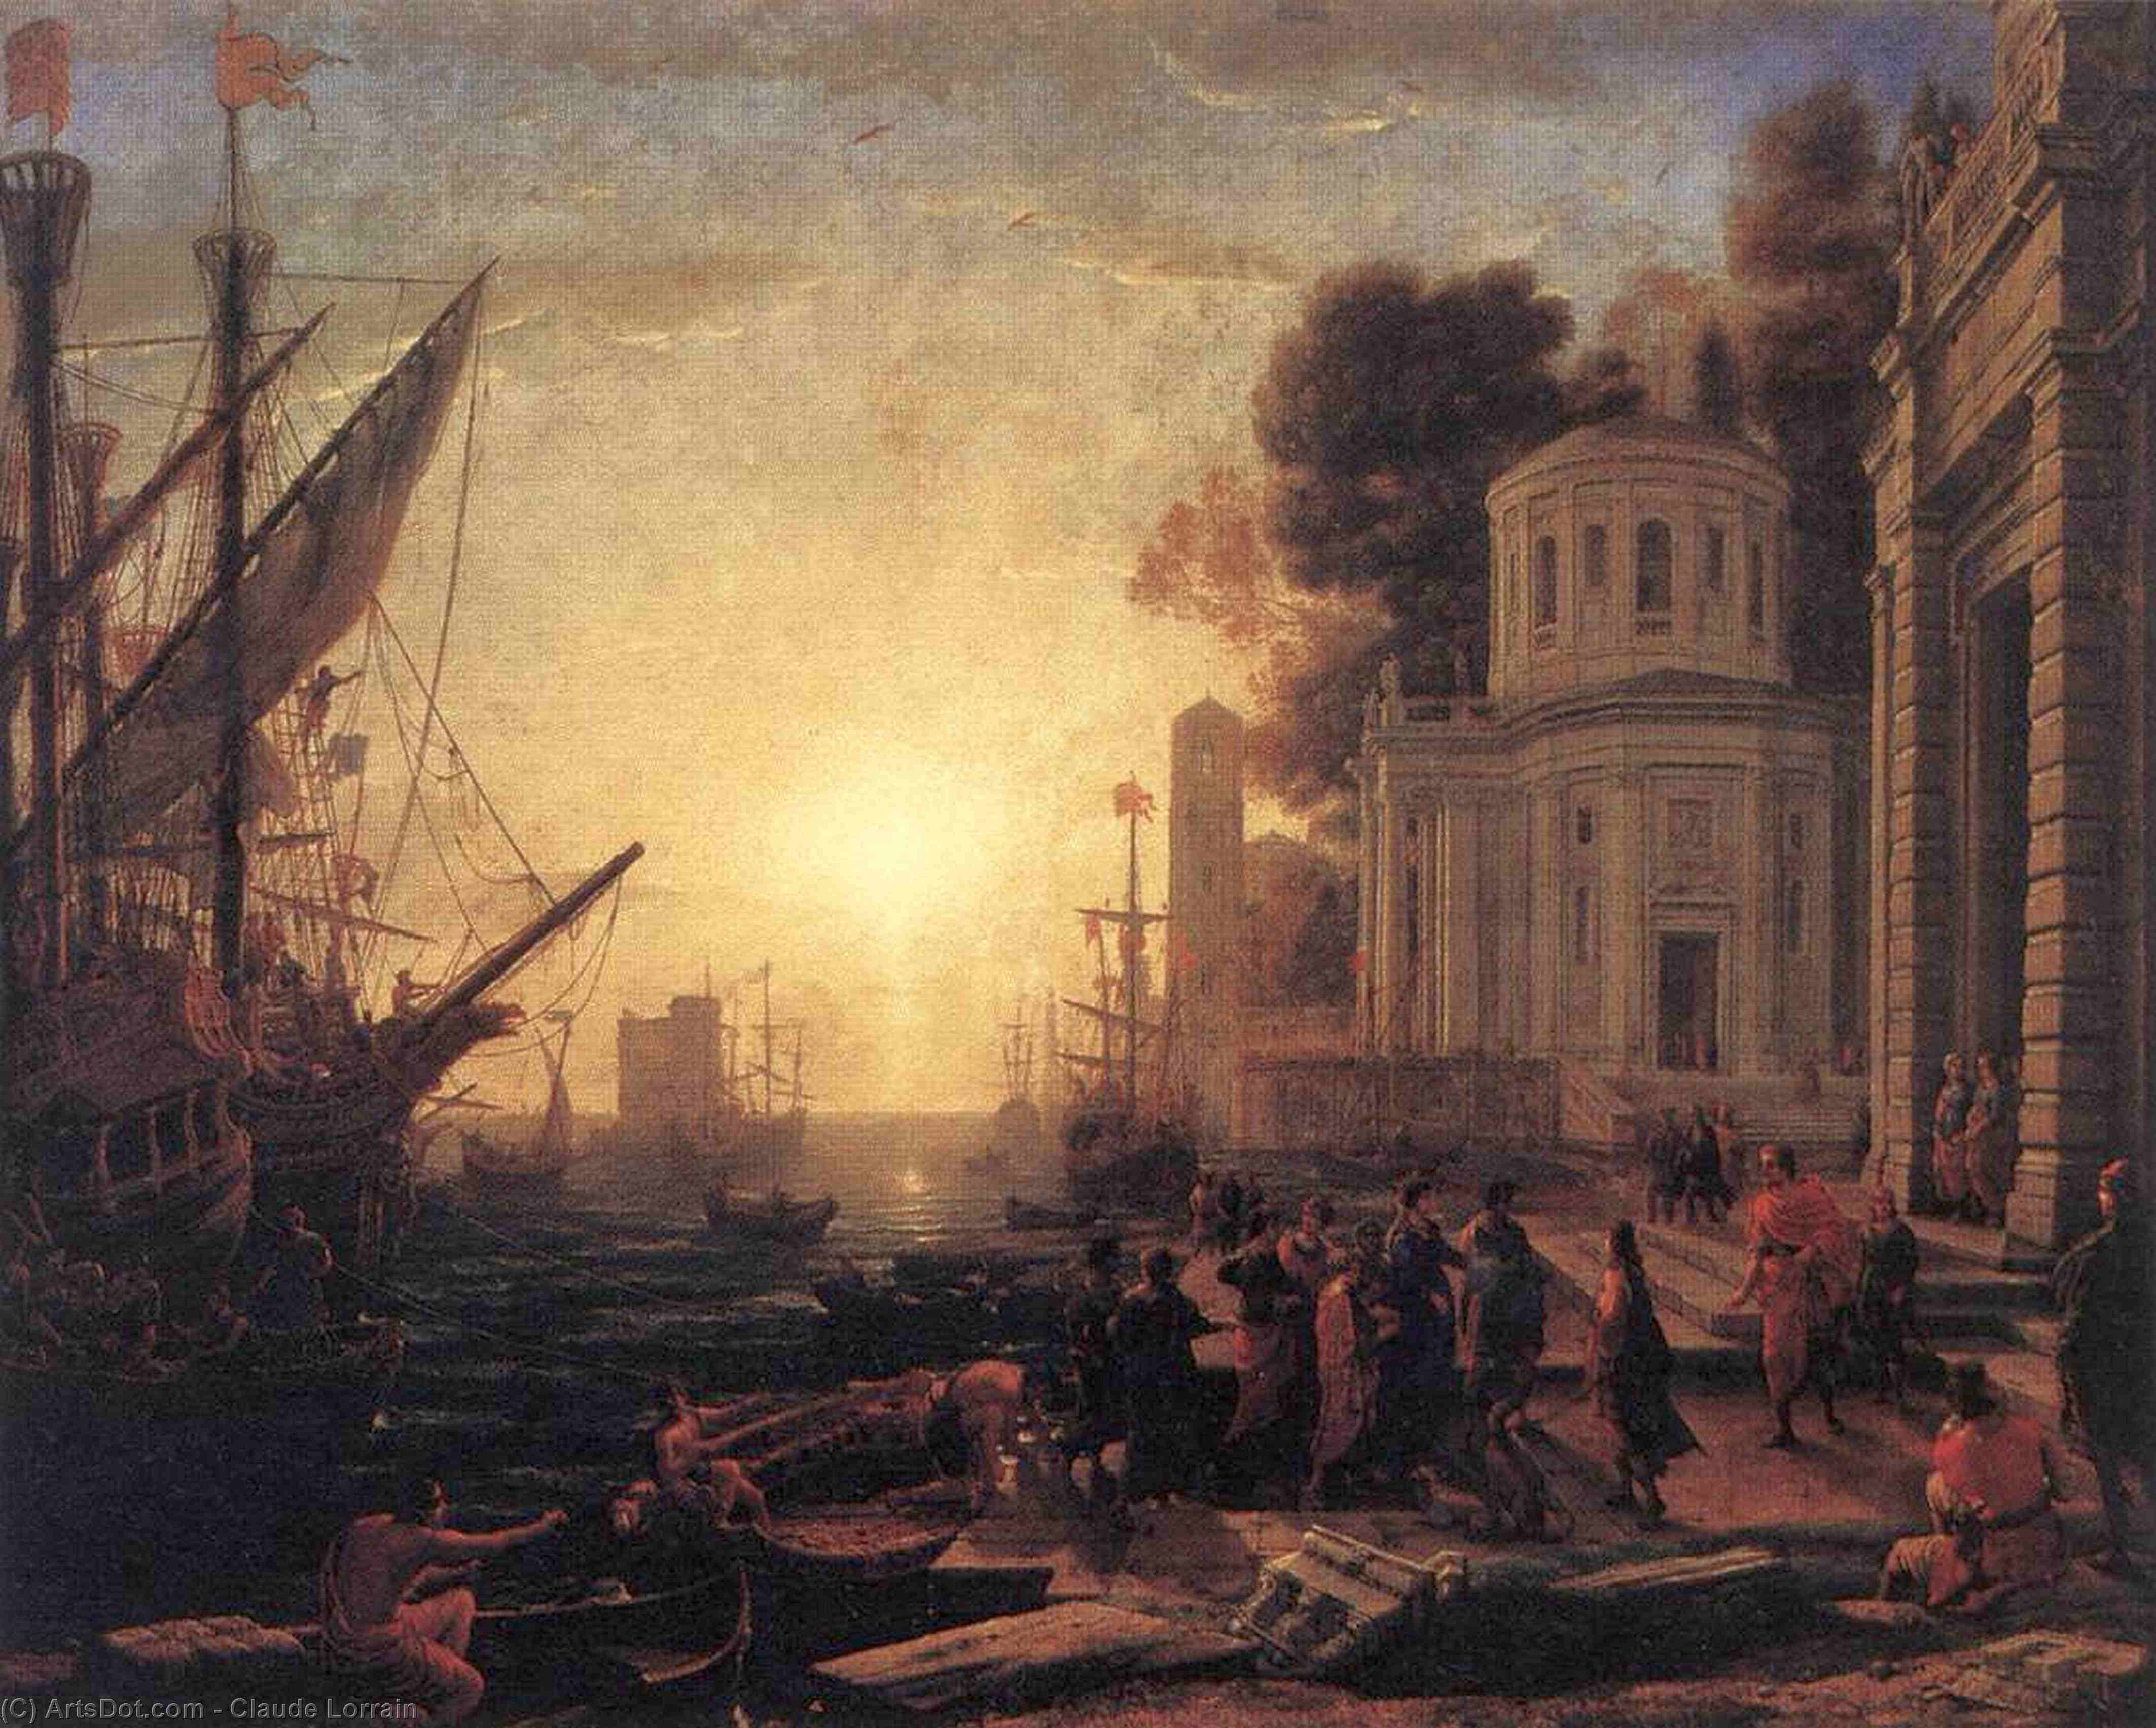 The Disembarkation of Cleopatra at Tarsus, 1642 by Claude Lorrain (Claude Gellée)